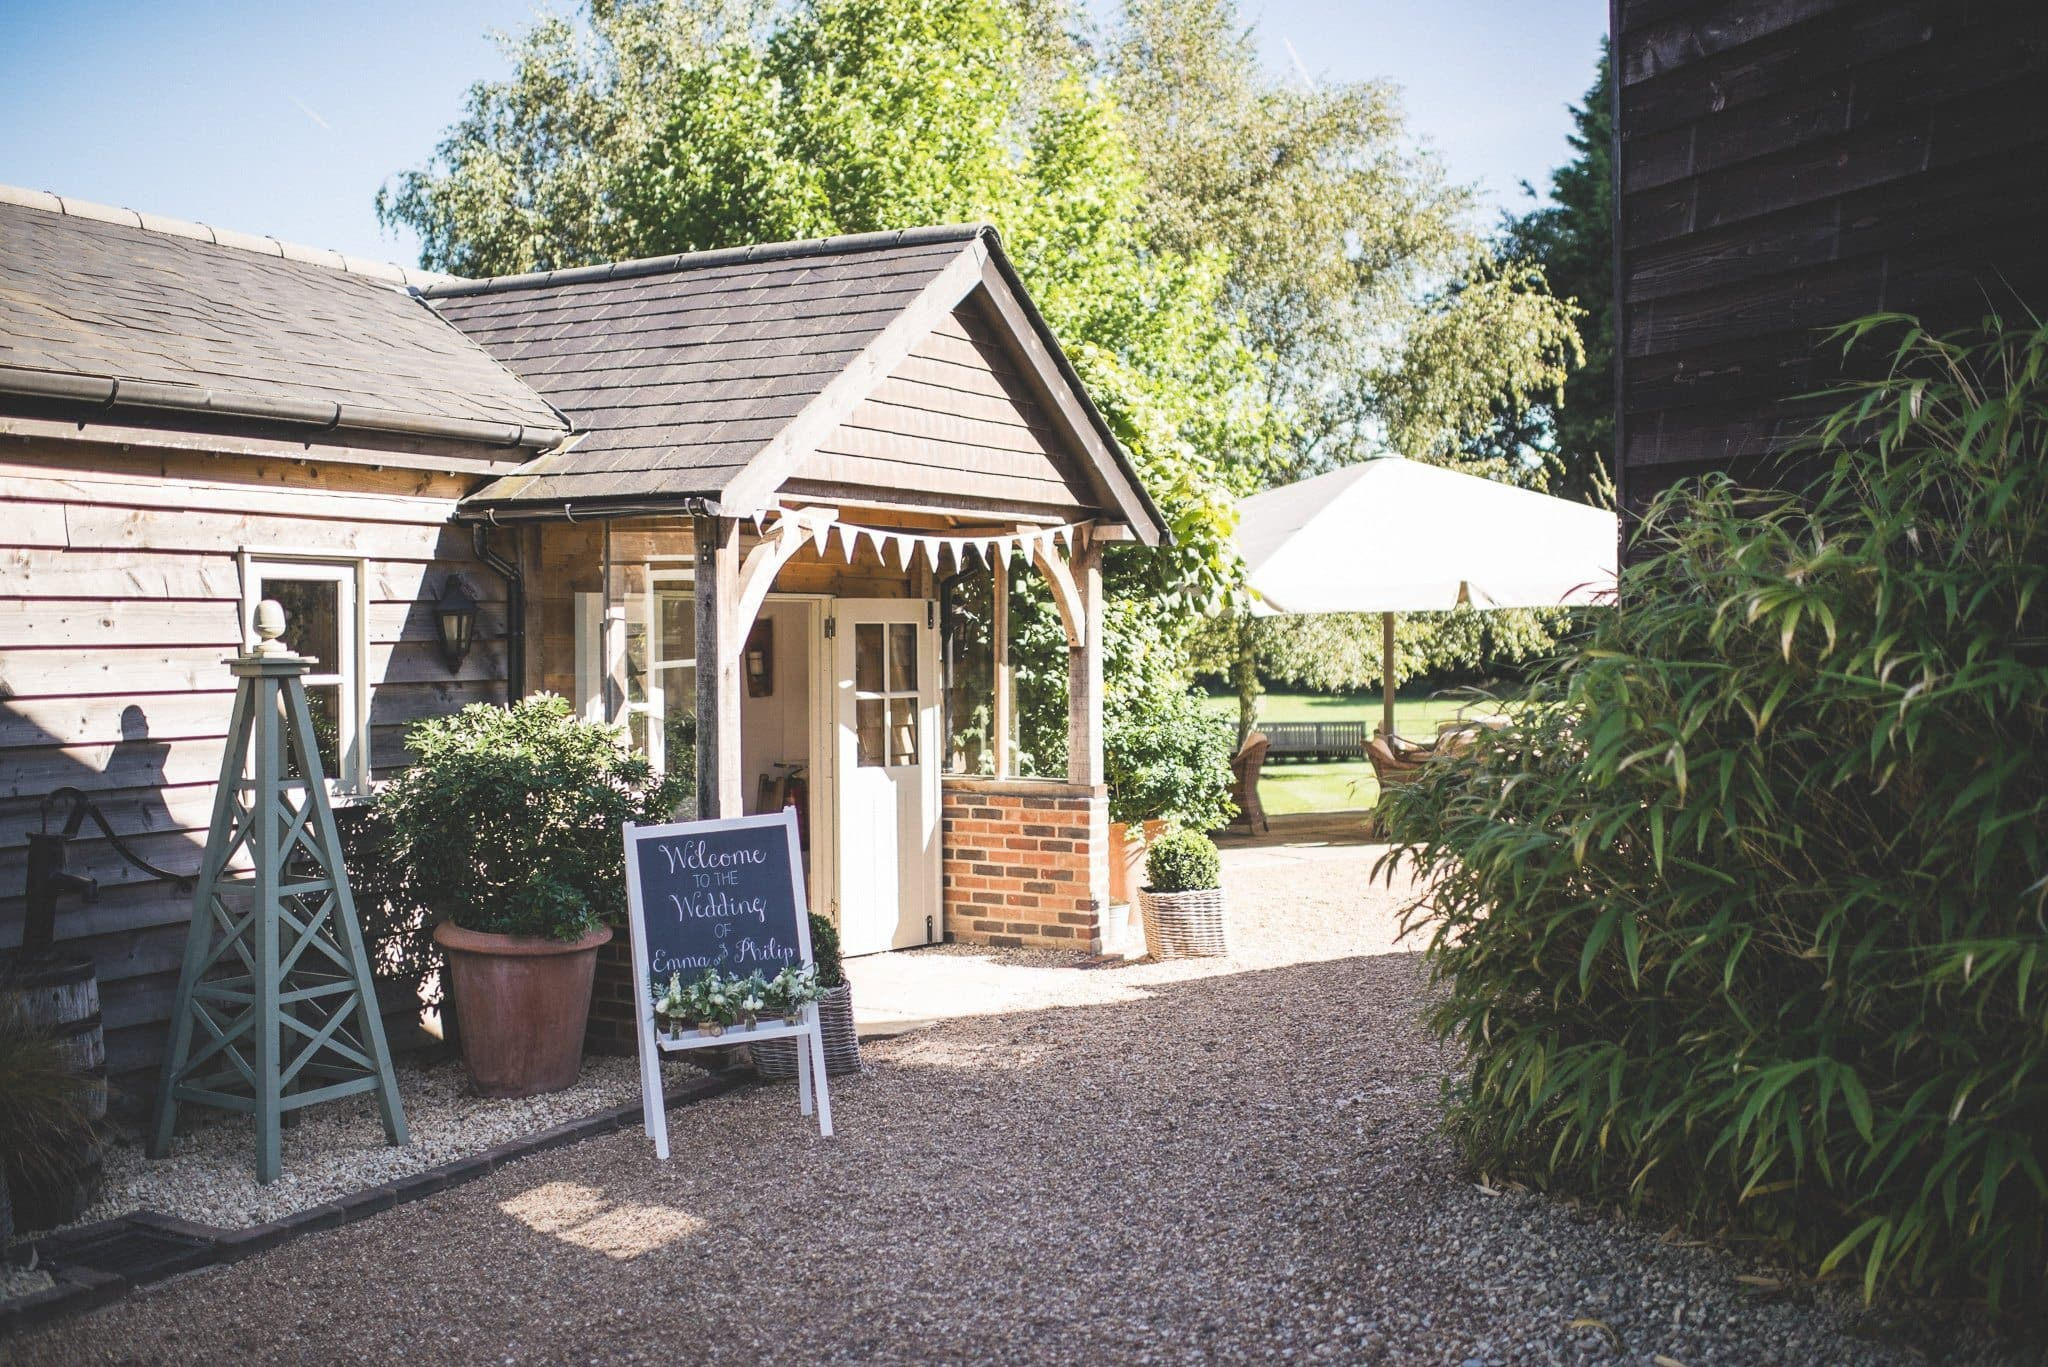 The entrance to the barn with bunting strung across it and a chalkboard welcome sign